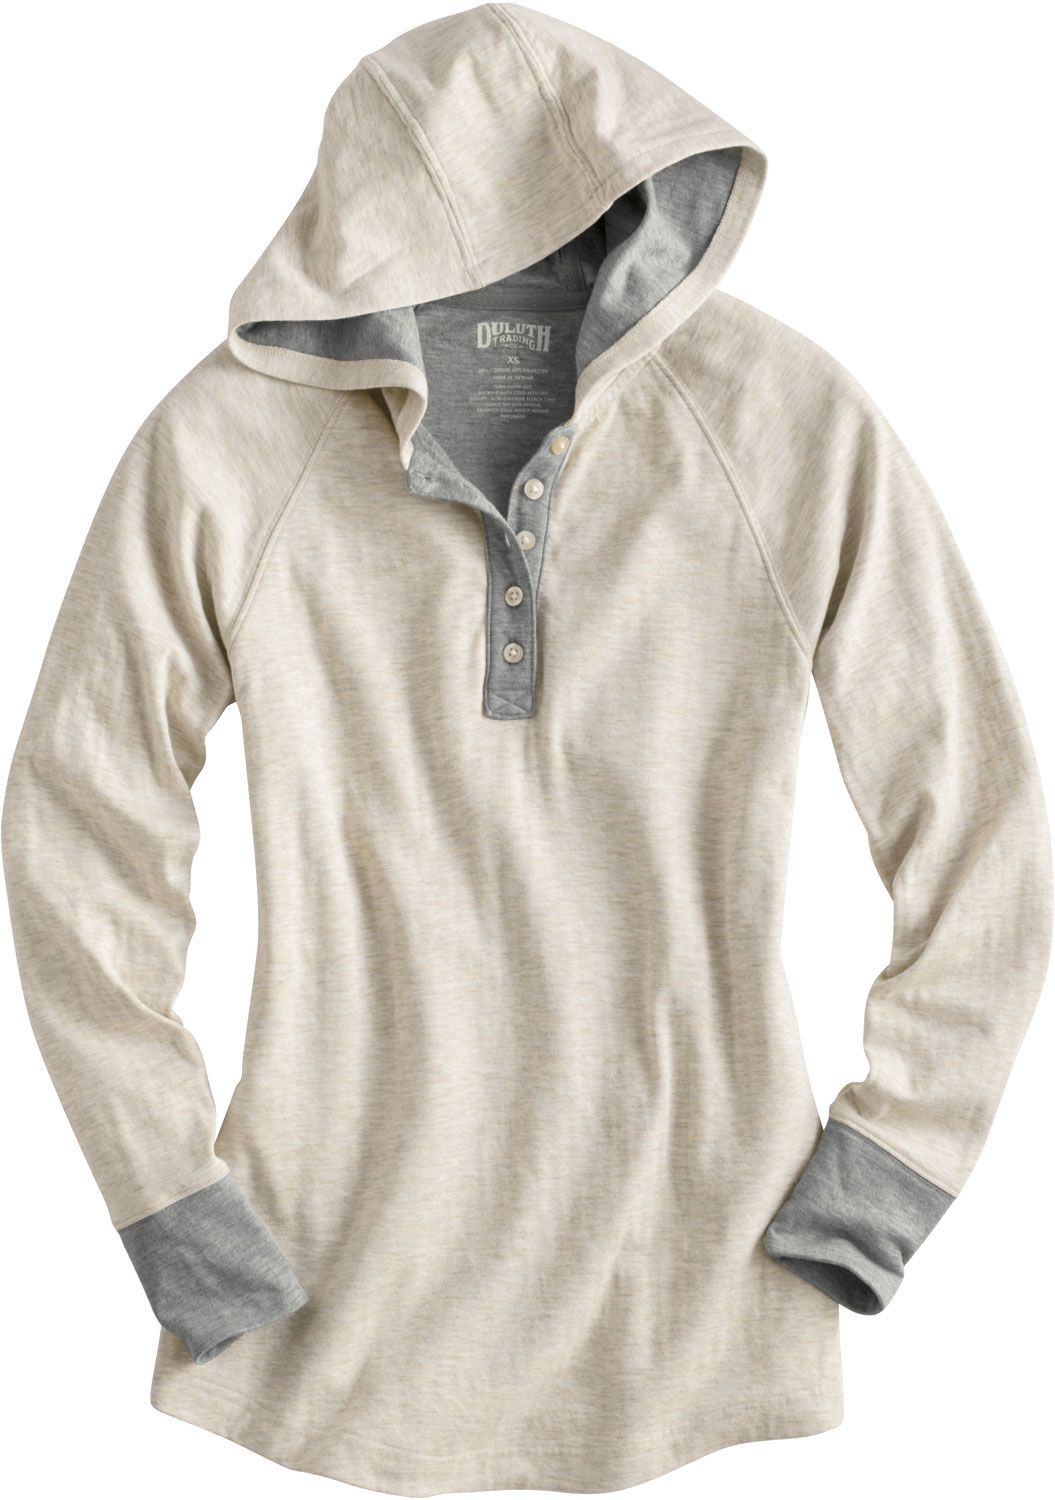 duluth trading\u0027s double soft hoodie uses two lightweight layers knit  duluth trading\u0027s double soft hoodie uses two lightweight layers knit into one to create one incredibly soft and comfortable fabric with twice the insulating